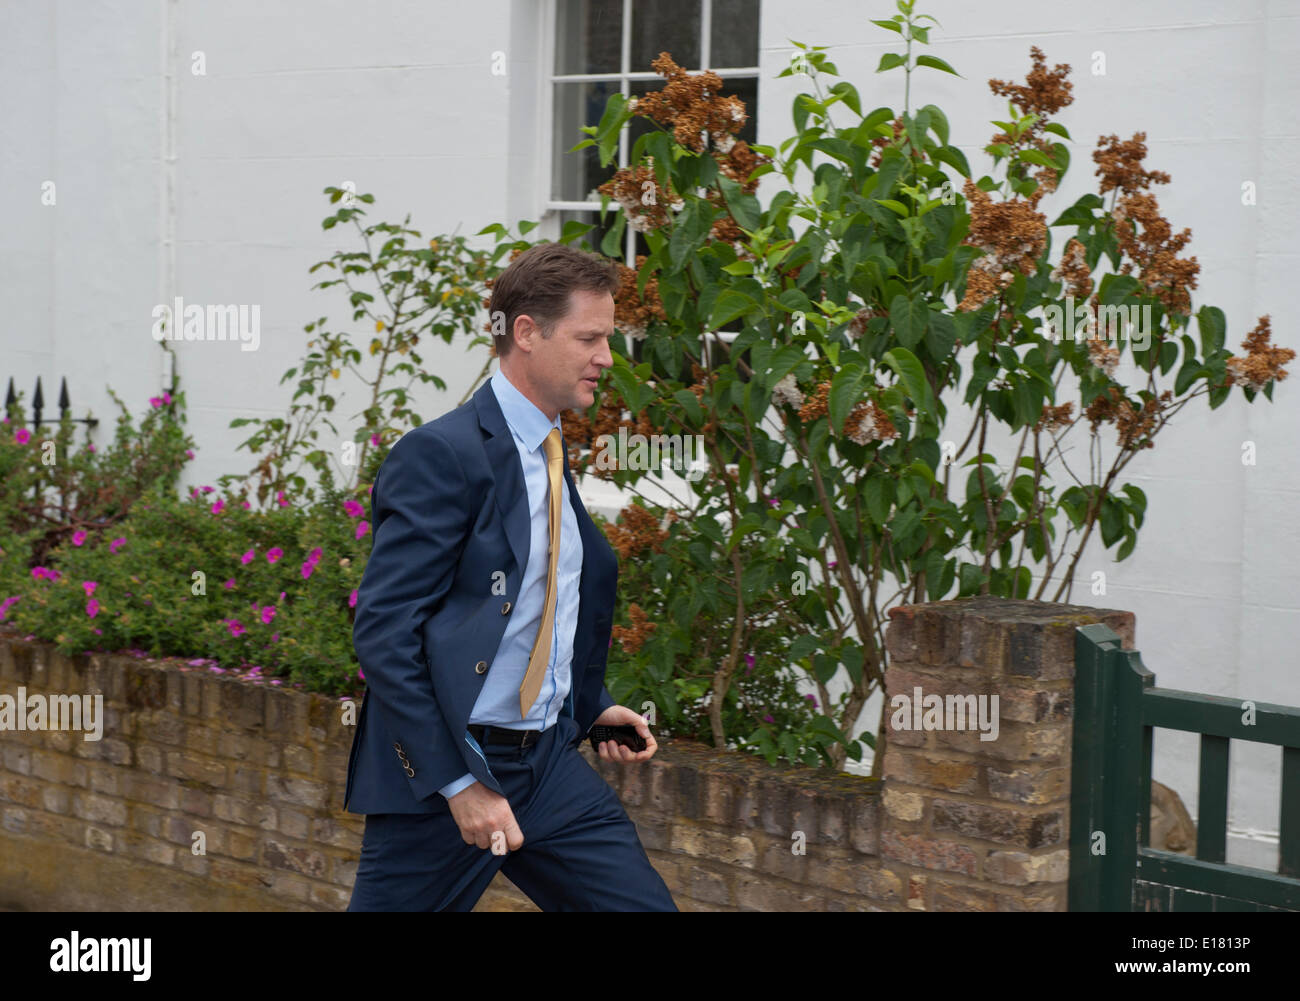 Nick Clegg deputy Prime Minister  arrives home after Euro Election defeat London Uk 26th May 2014 Credit:  Prixnews/Alamy - Stock Image